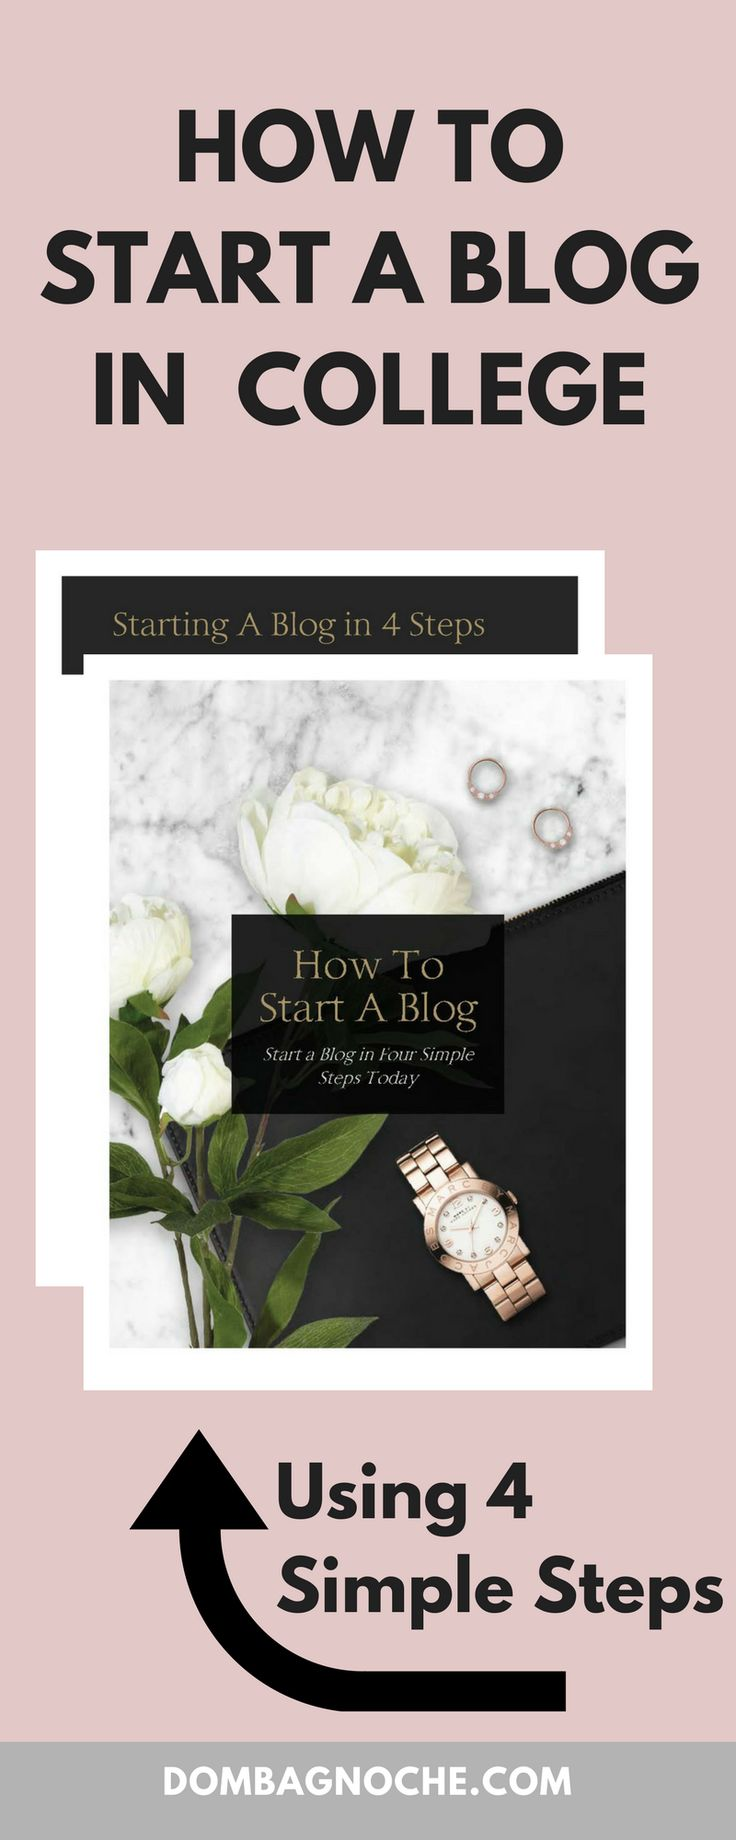 How to start a blog during college and why you should start blogging now! Plus a free how to guide you can download to help you along the way!